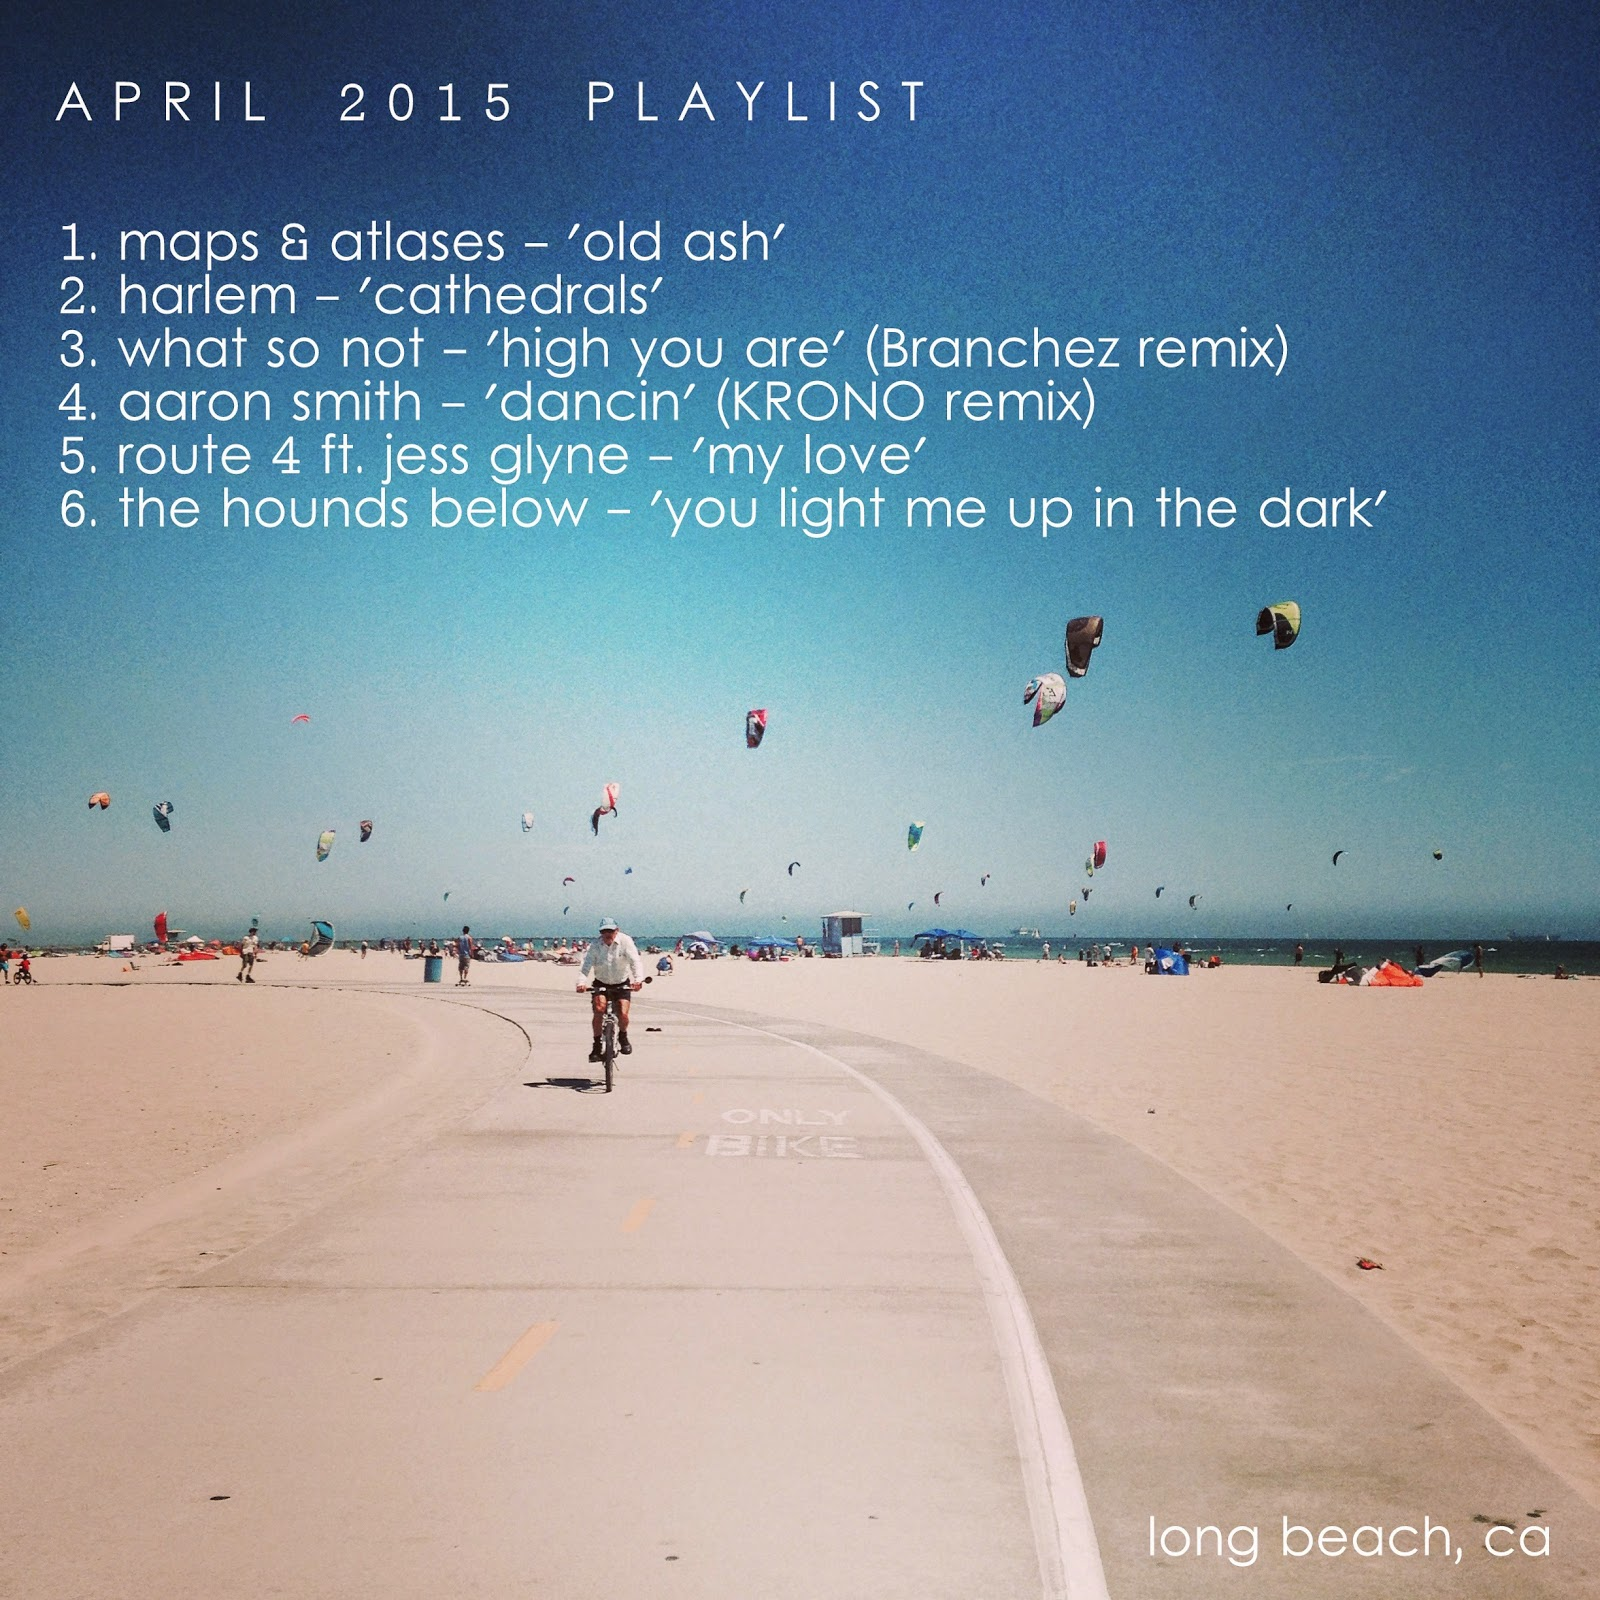 april, 2015, playlist, music, maps and atlases, harlem, what so not, aaron smith, route 4, the hounds below